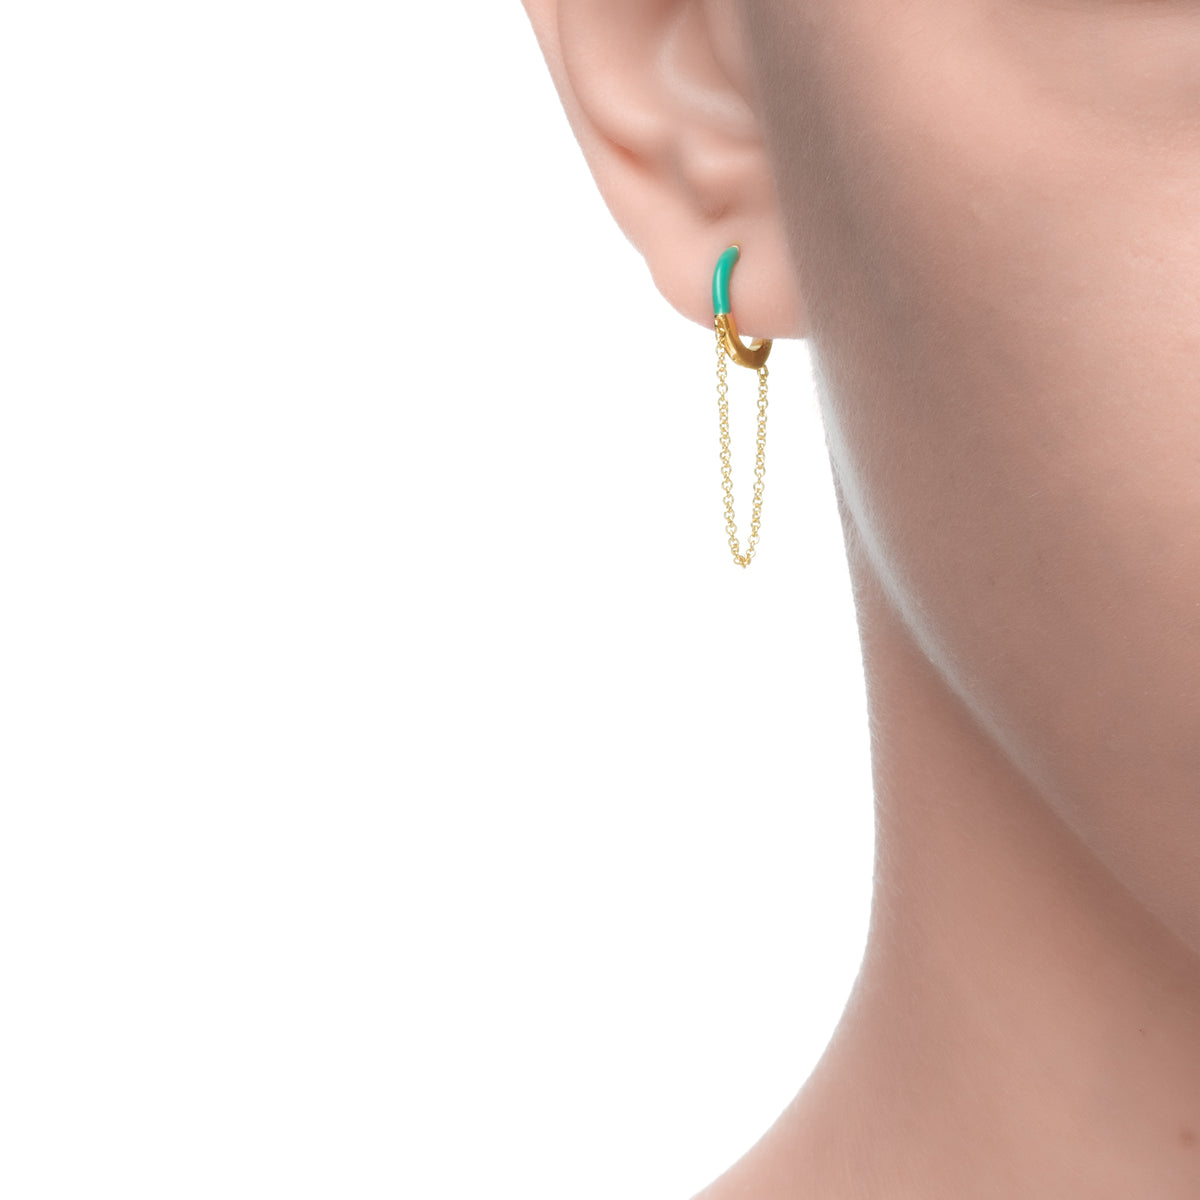 Cardea | Shimeji Earrings | 925 Silver | Turquoise Enamel | 14K Gold Plated